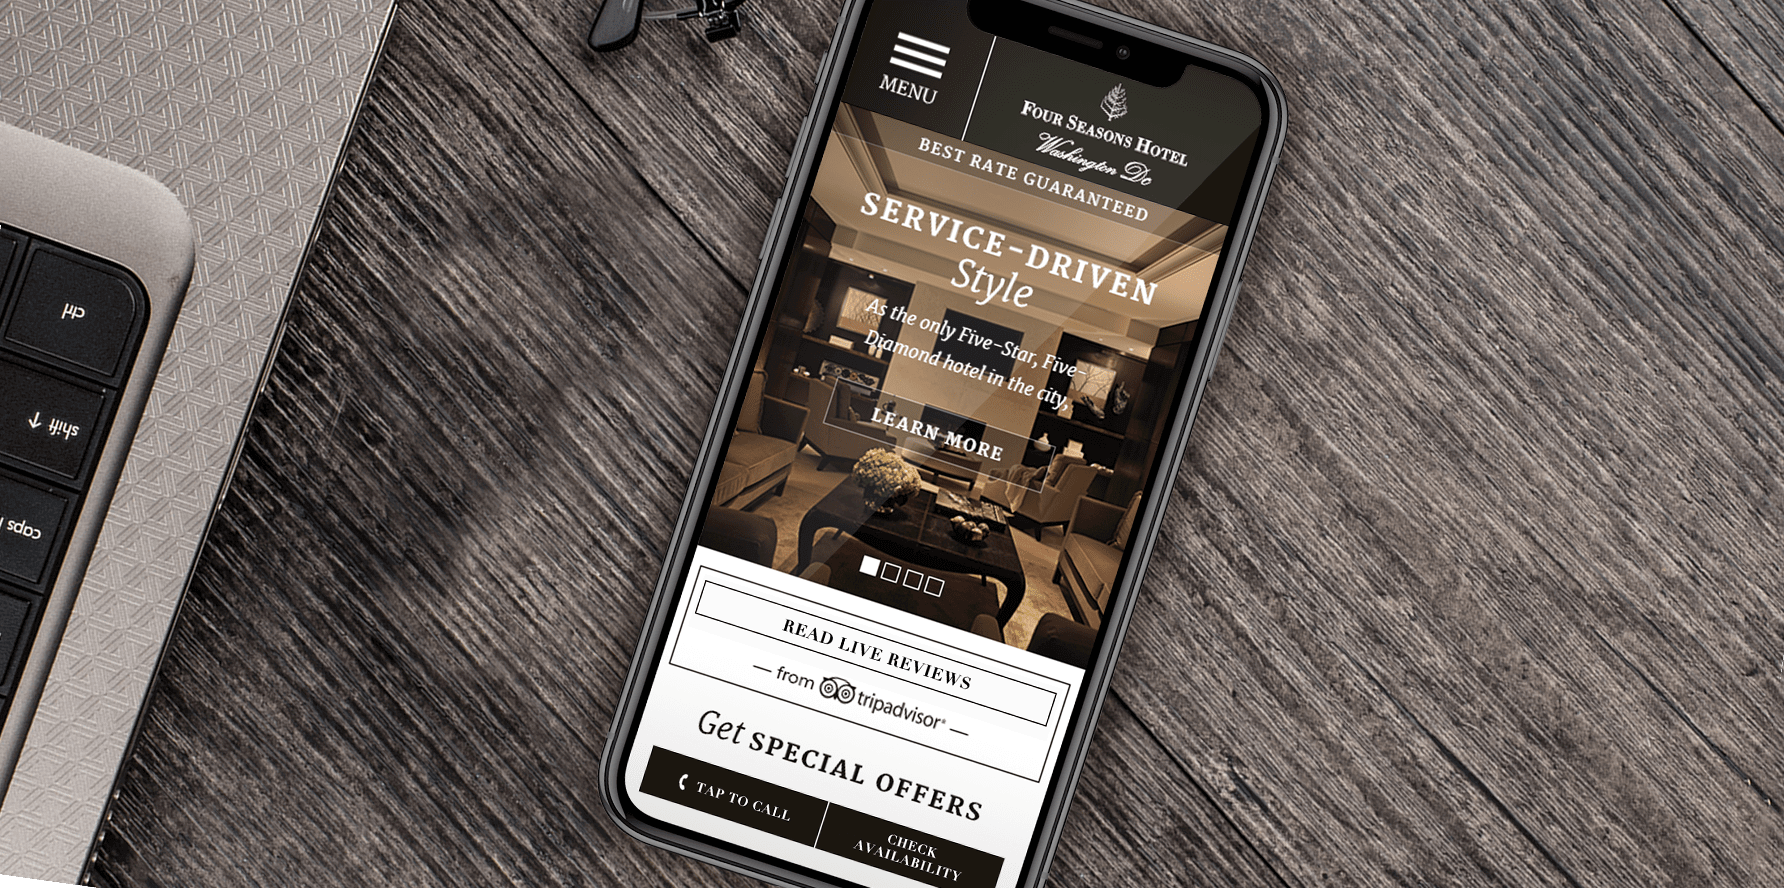 Four Seasons Location Lead Generation Landing Page Mobile Concept